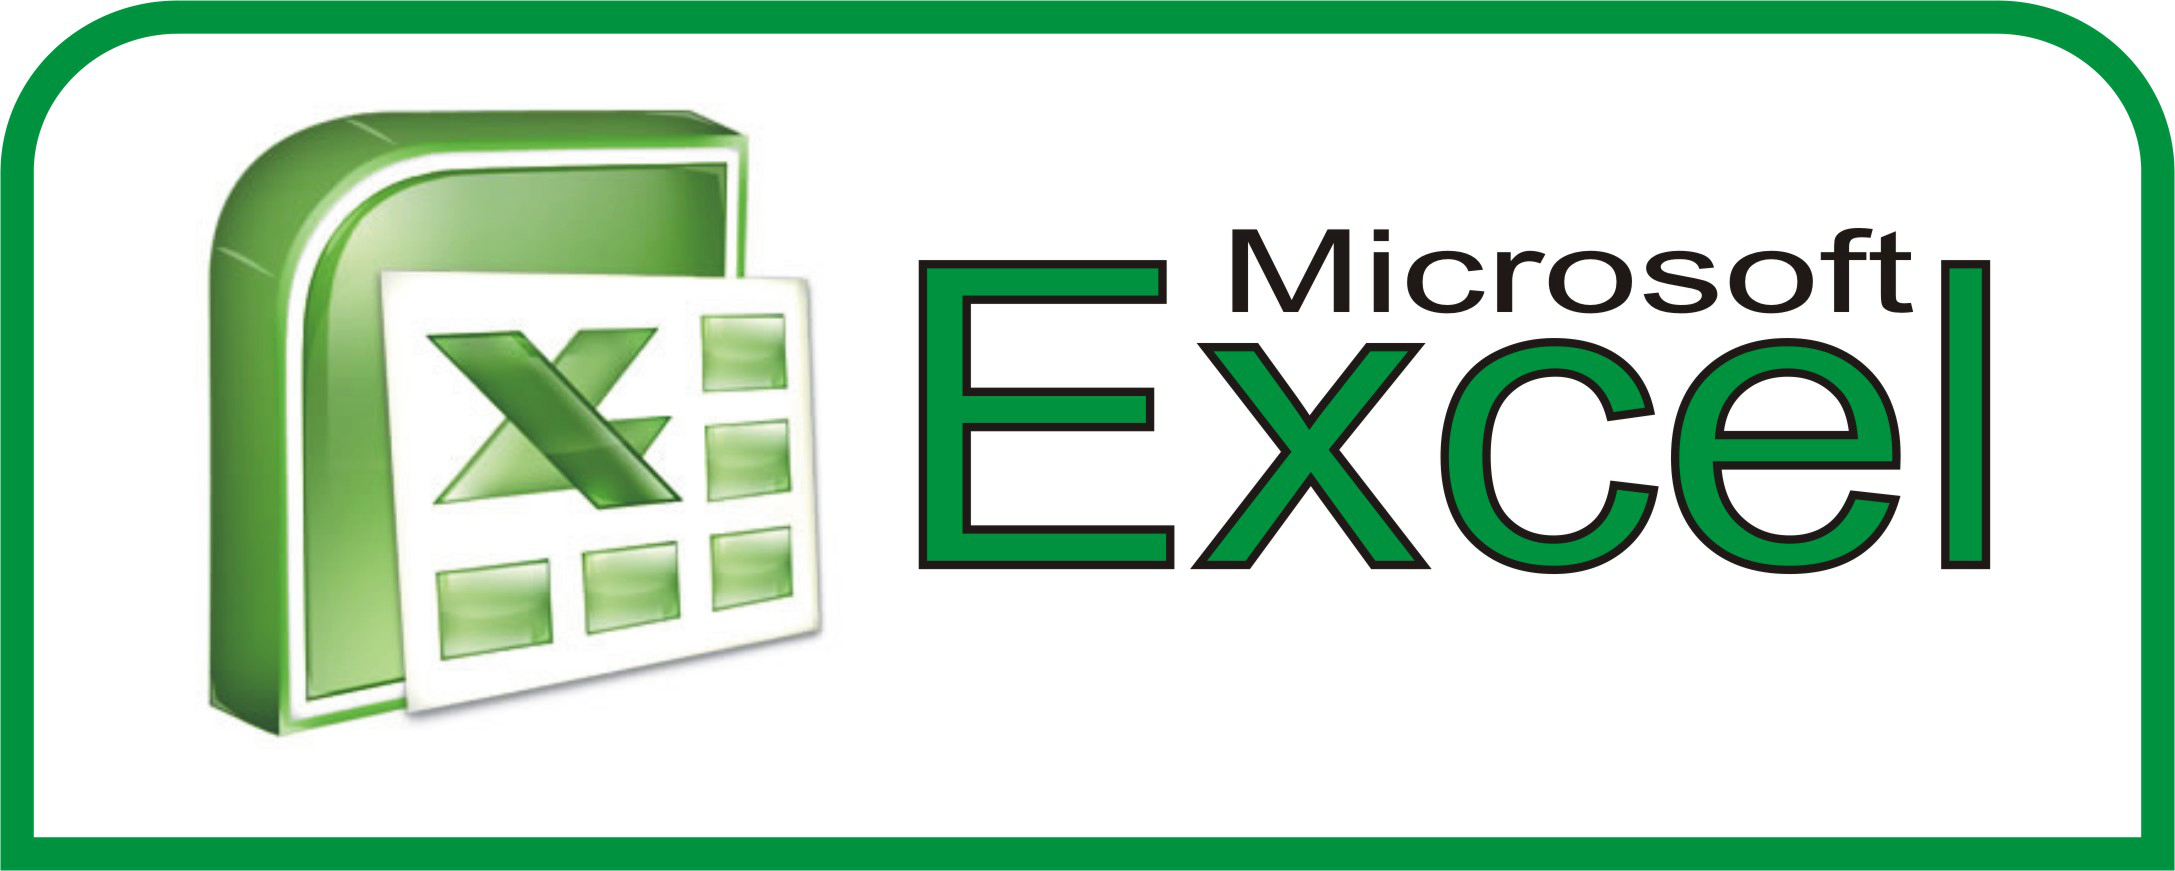 Ediblewildsus  Marvelous  Excel Shortcuts You Probably Didnt Know About  Techdissected With Inspiring Bins Excel Besides Pay Stub Template Excel Download Furthermore Ssis Import Excel With Delightful Password In Excel Also Excel Applicationrun In Addition Pv Formula In Excel And Excel Info As Well As Microsoft Excel Sumif Additionally Iso  Audit Checklist Excel Xls From Techdissectedcom With Ediblewildsus  Inspiring  Excel Shortcuts You Probably Didnt Know About  Techdissected With Delightful Bins Excel Besides Pay Stub Template Excel Download Furthermore Ssis Import Excel And Marvelous Password In Excel Also Excel Applicationrun In Addition Pv Formula In Excel From Techdissectedcom